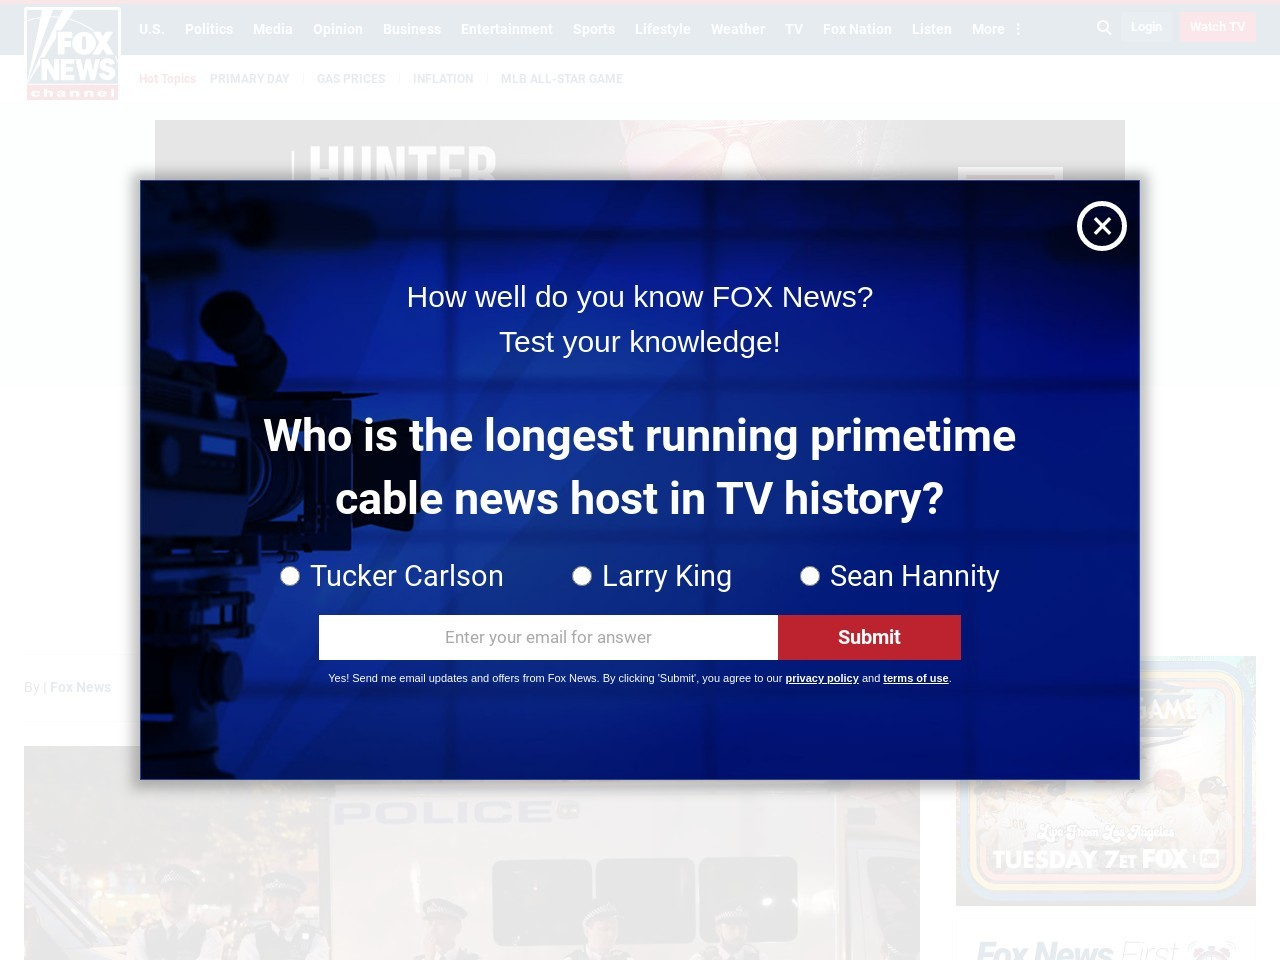 DEADLY DRIVER BLEW A KISS  Terror eyed after van plows into London mosque crowd, killing 1